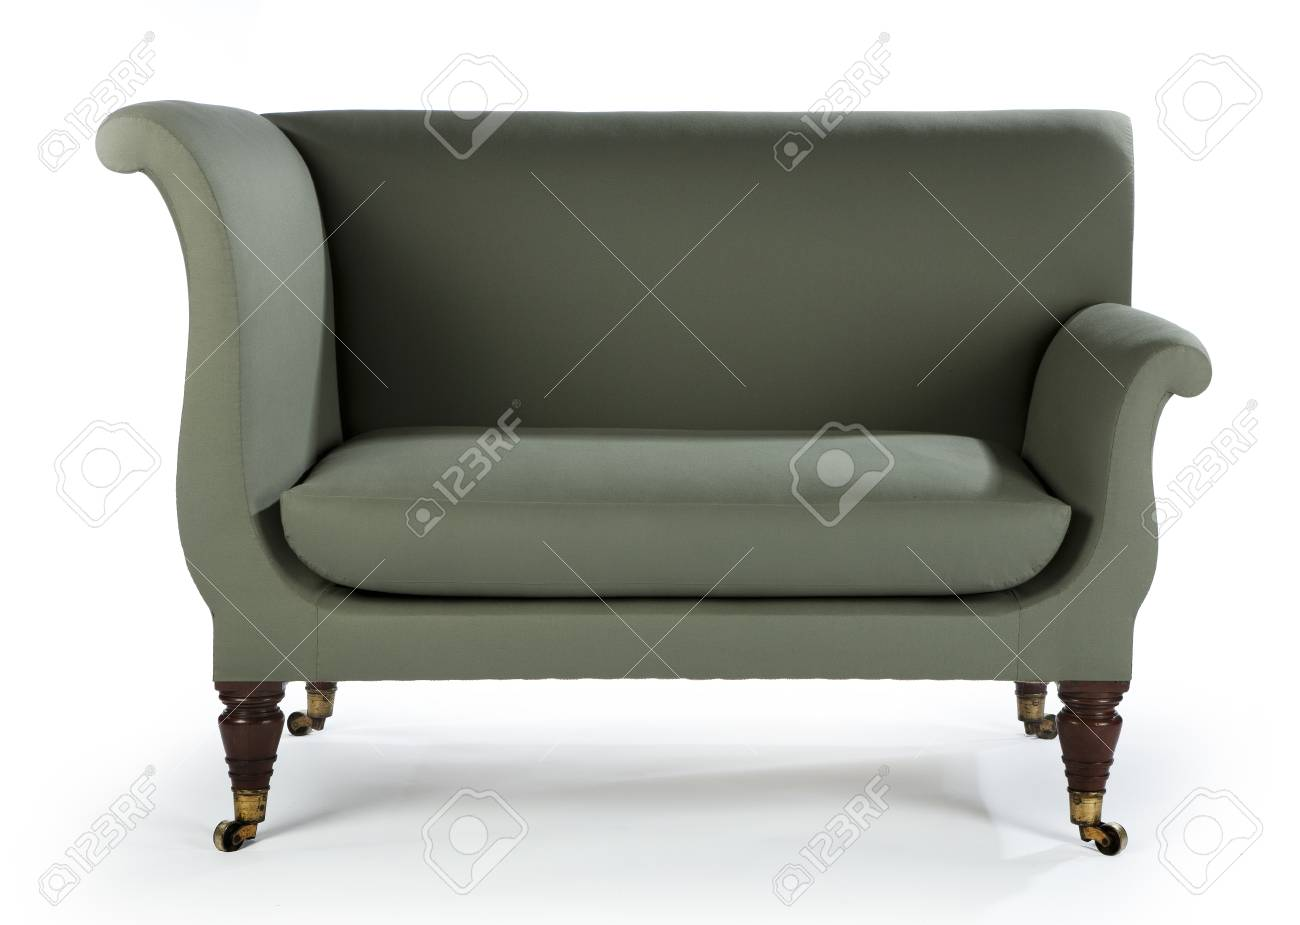 Upholstered Green Sofa Retro Style Isolated On White Stock Photo